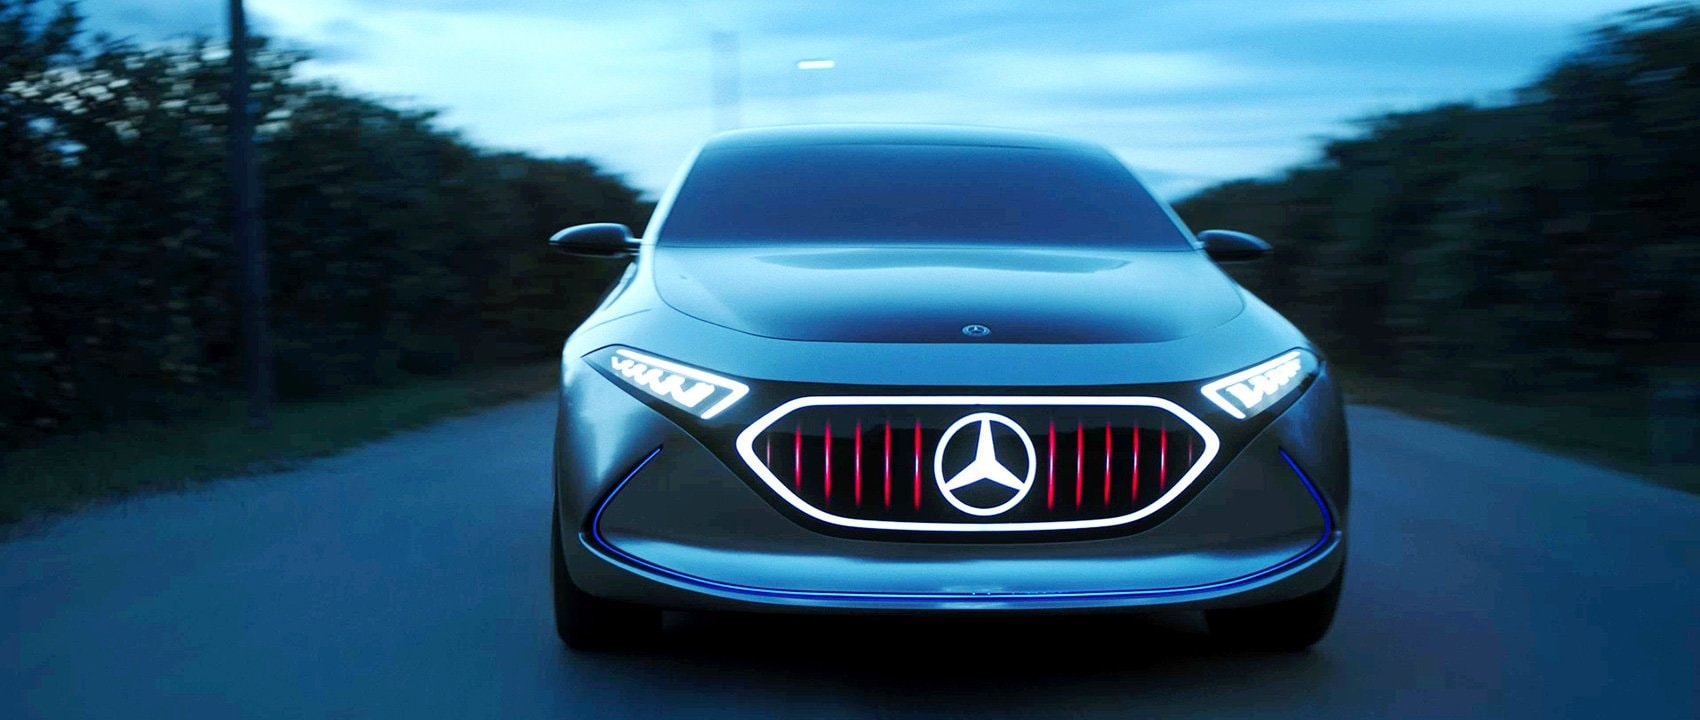 The Mercedes-Benz Concept EQA in Sicily.